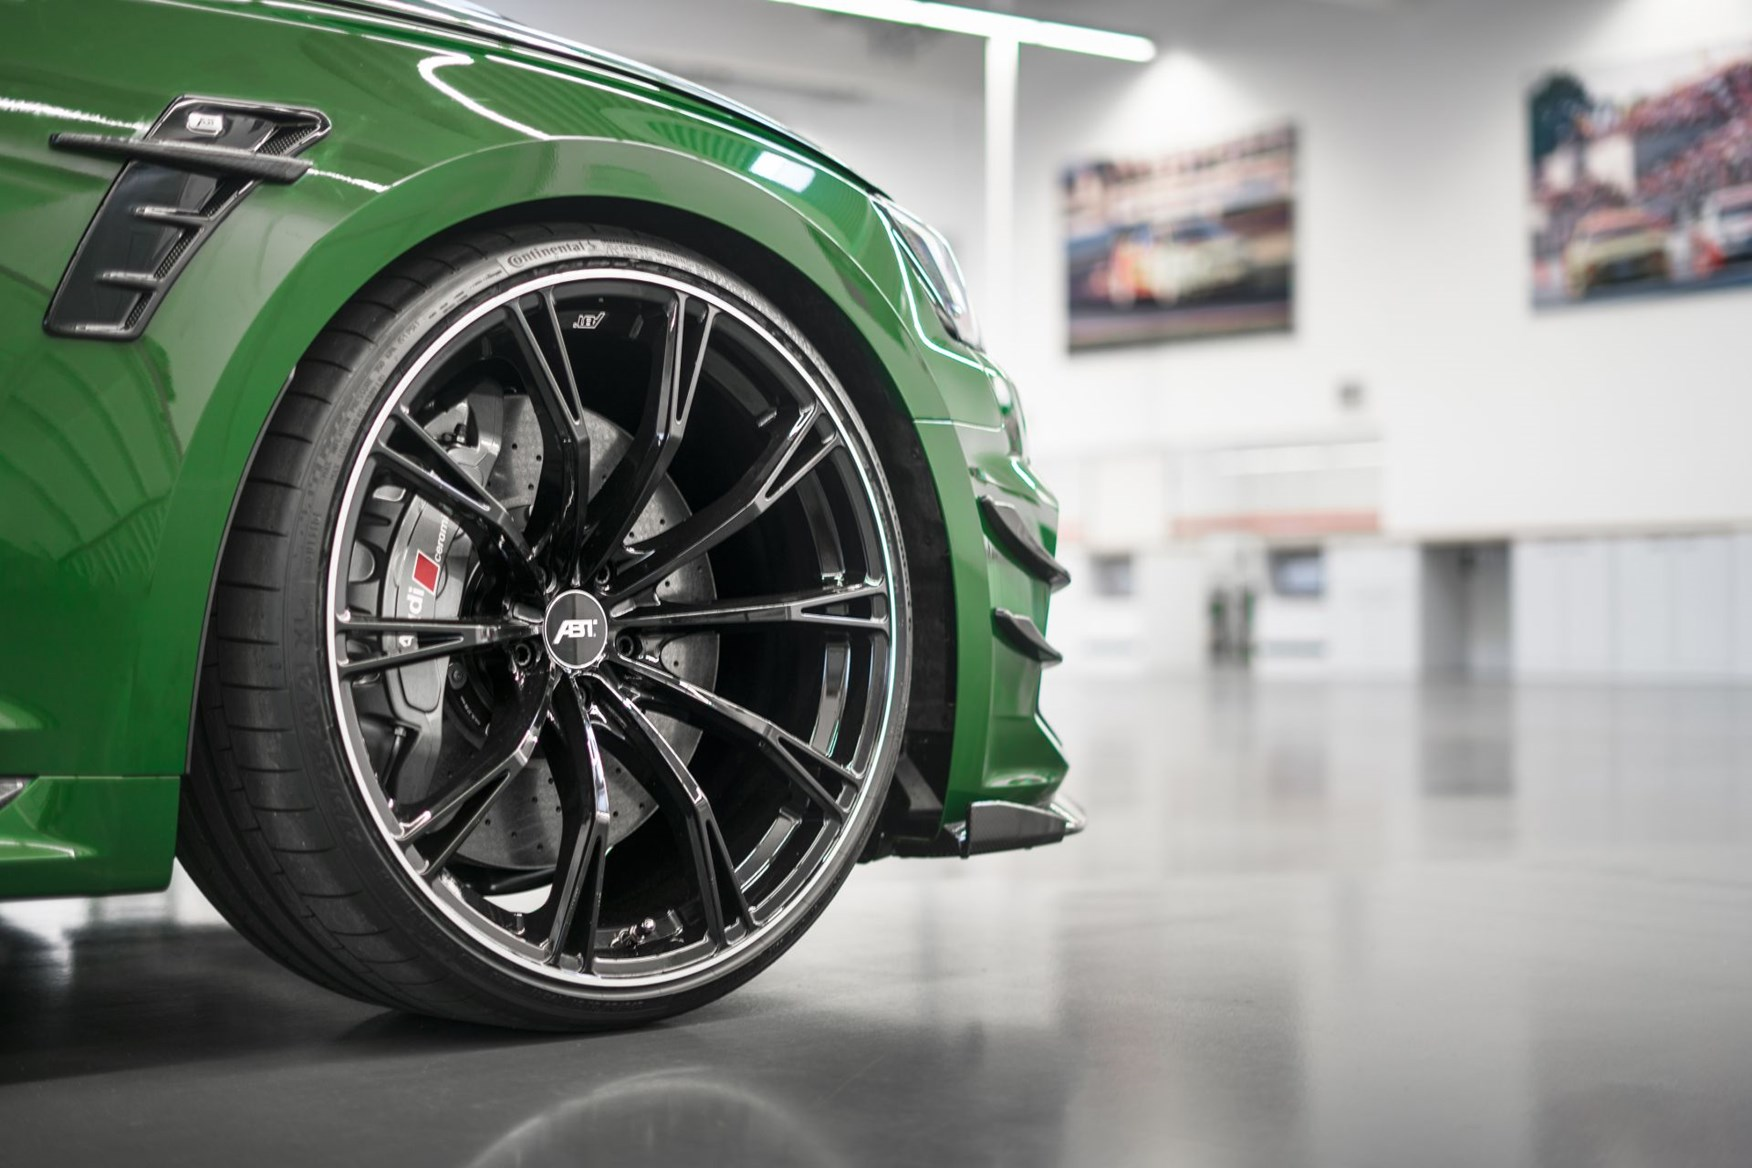 Meet The Abt Rs5 R For When The Normal Audi Rs5 Isn T Fast Enough Car Magazine